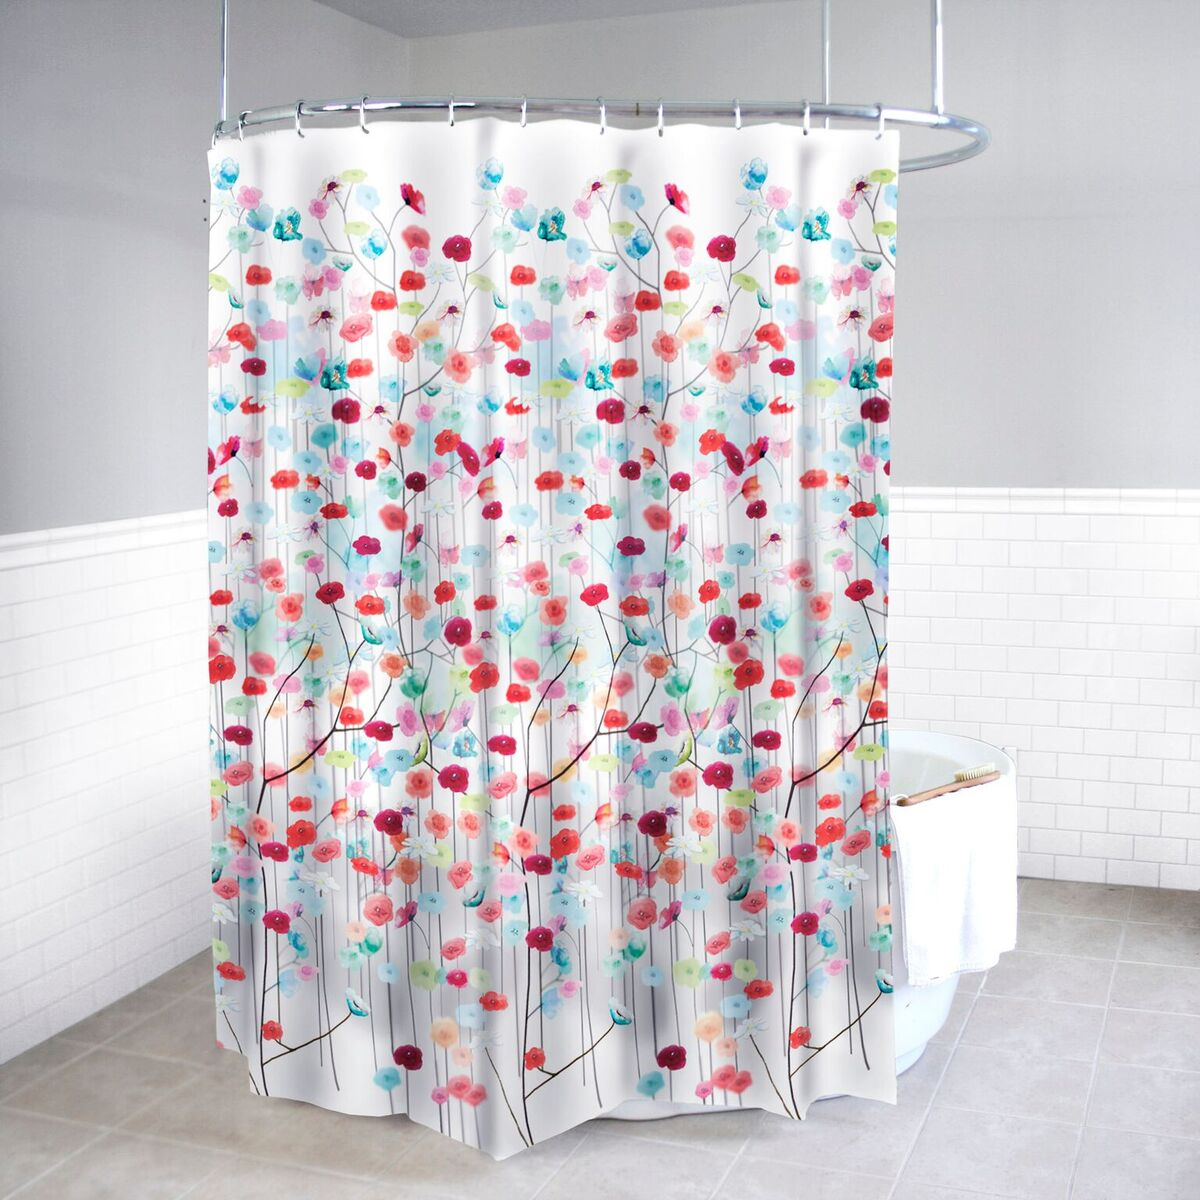 Details About Polyester Shower Curtain And Hooks Set Mansi Floral Bath Accessory Collection